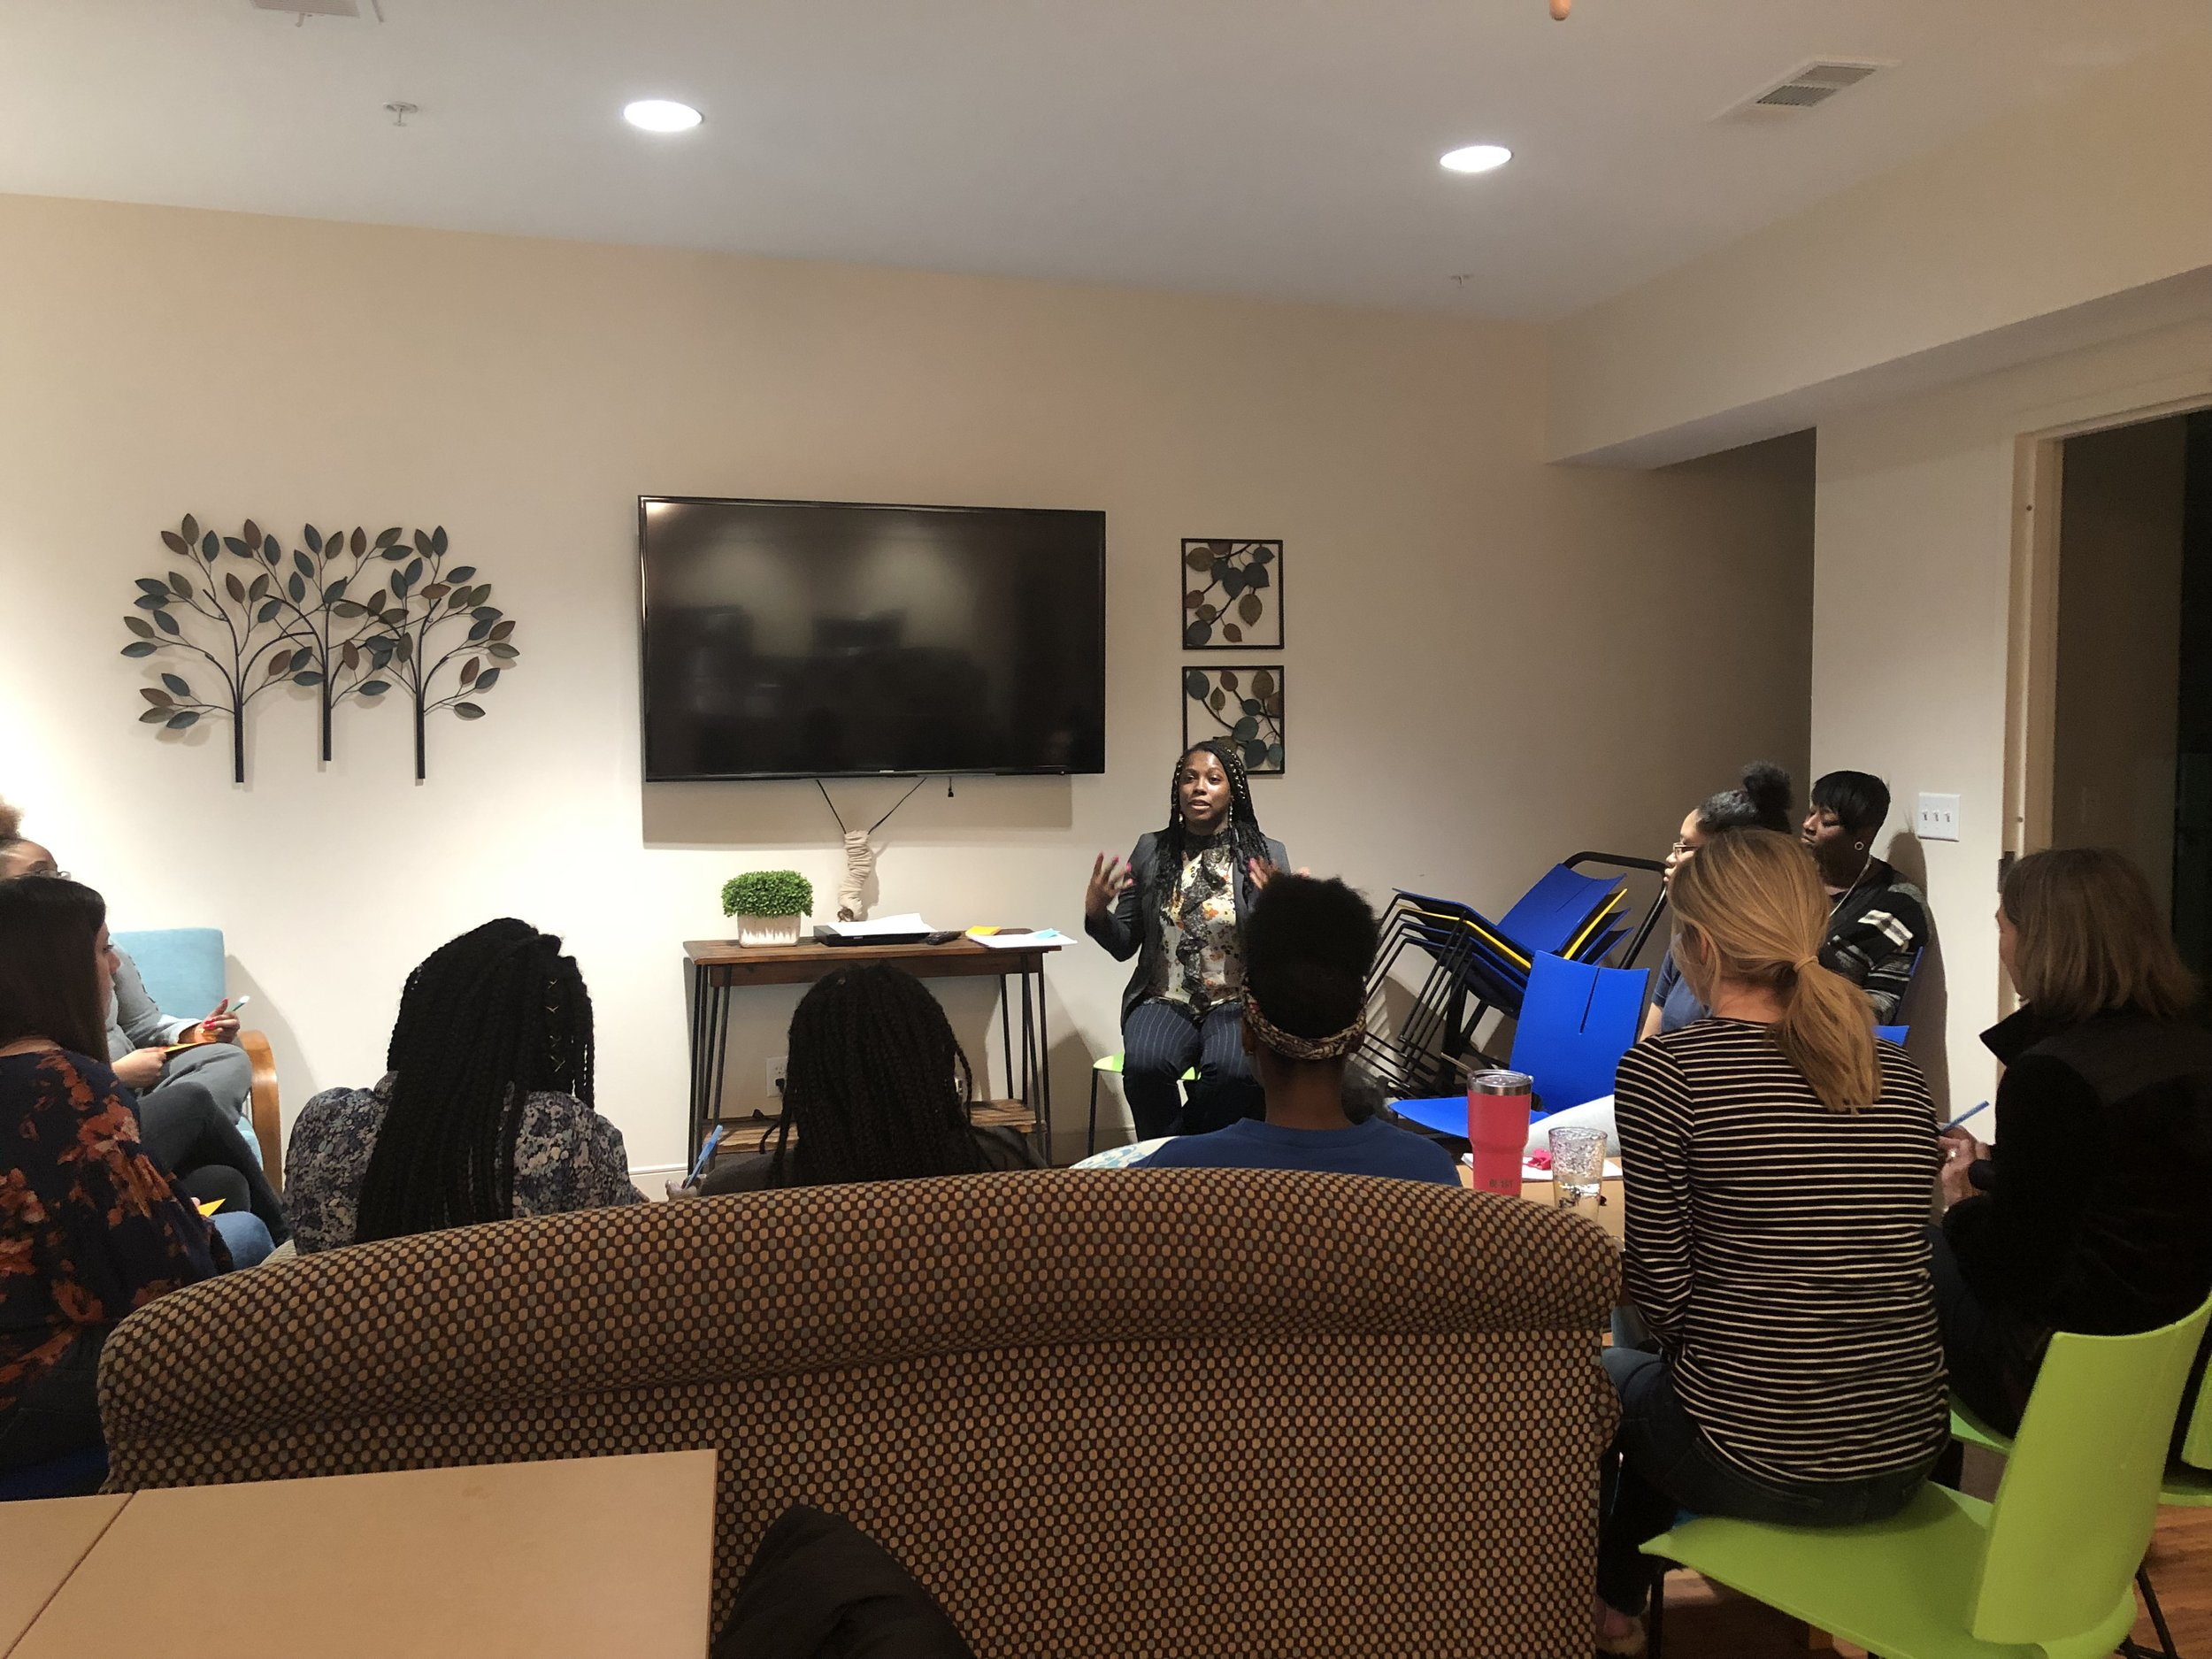 Date: Monday February 25, 2019 and Monday March 25, 2019  Location: Dallas, TX  Cleo discussed Financial Planning with  Our Friend's Place  resident's at Pauline's Place during their monthly skills night.